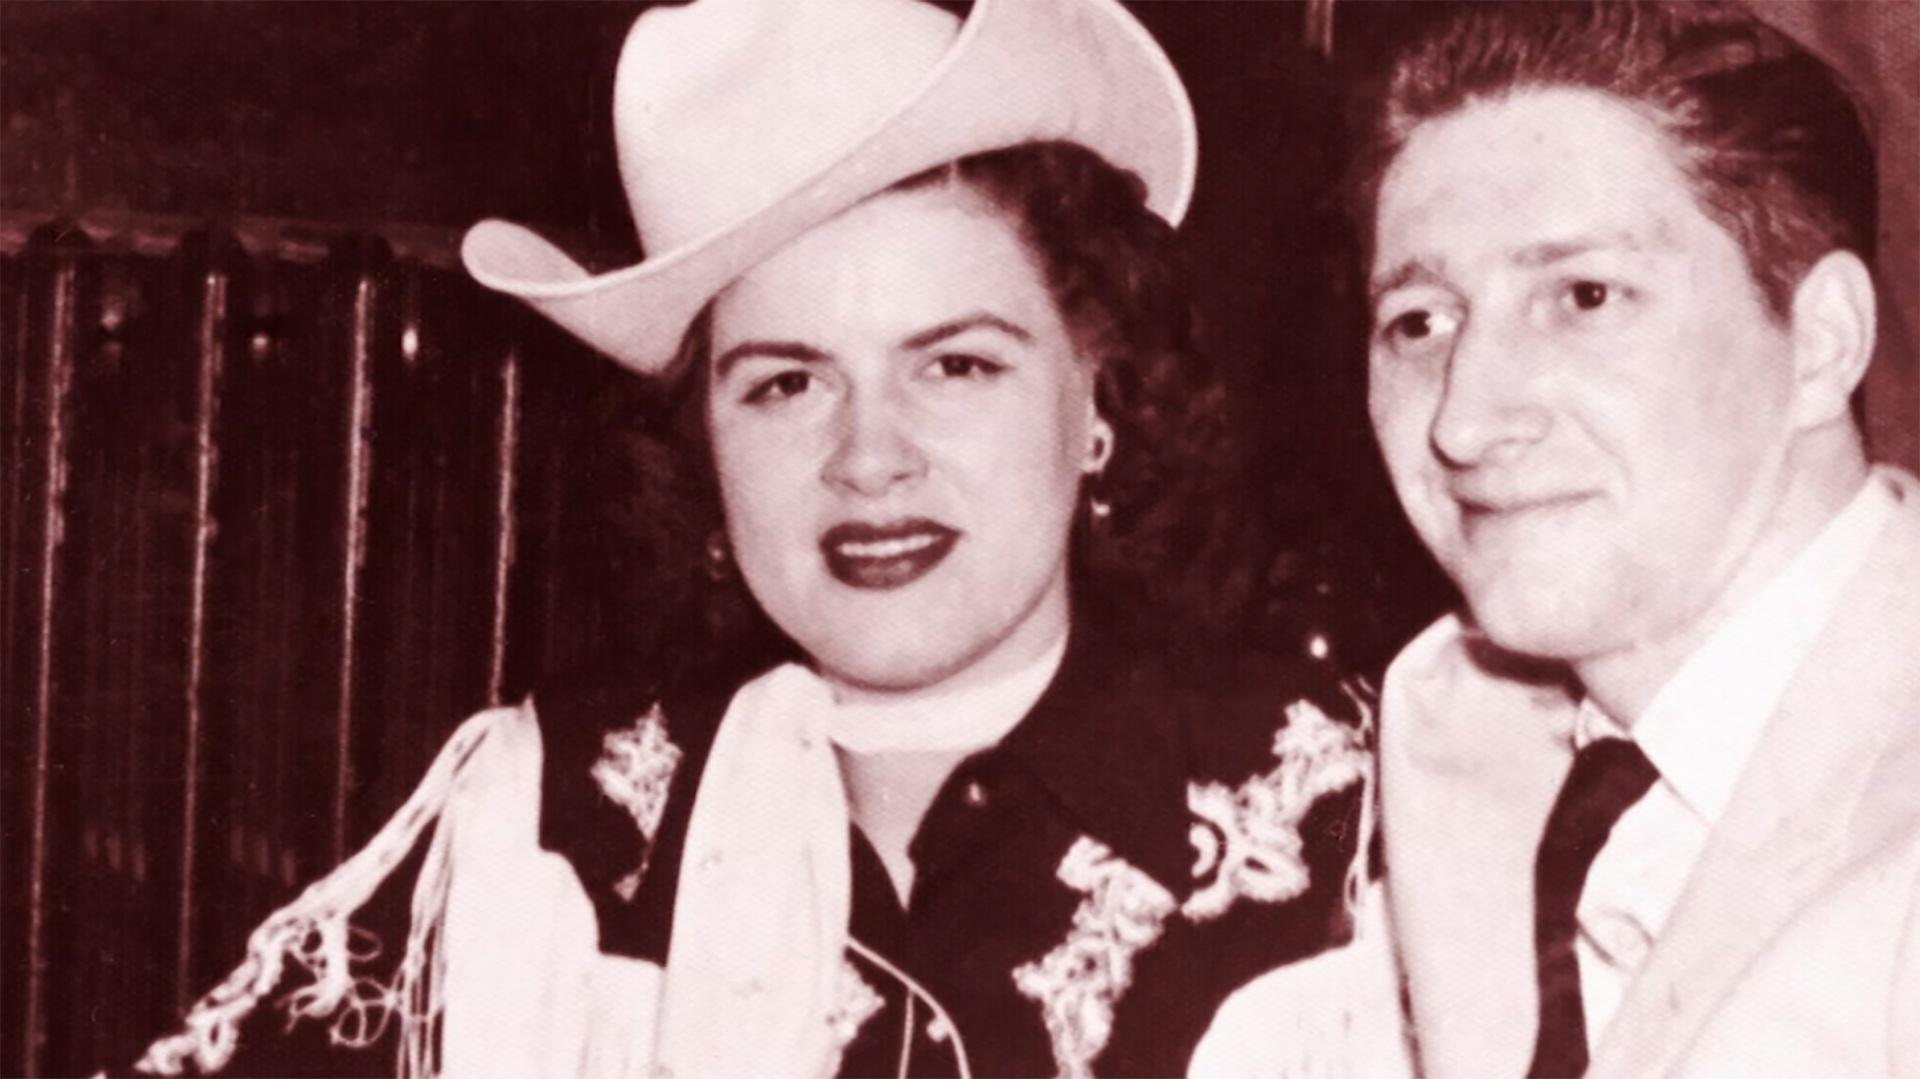 Patsy Cline: American Masters - The tension between Patsy